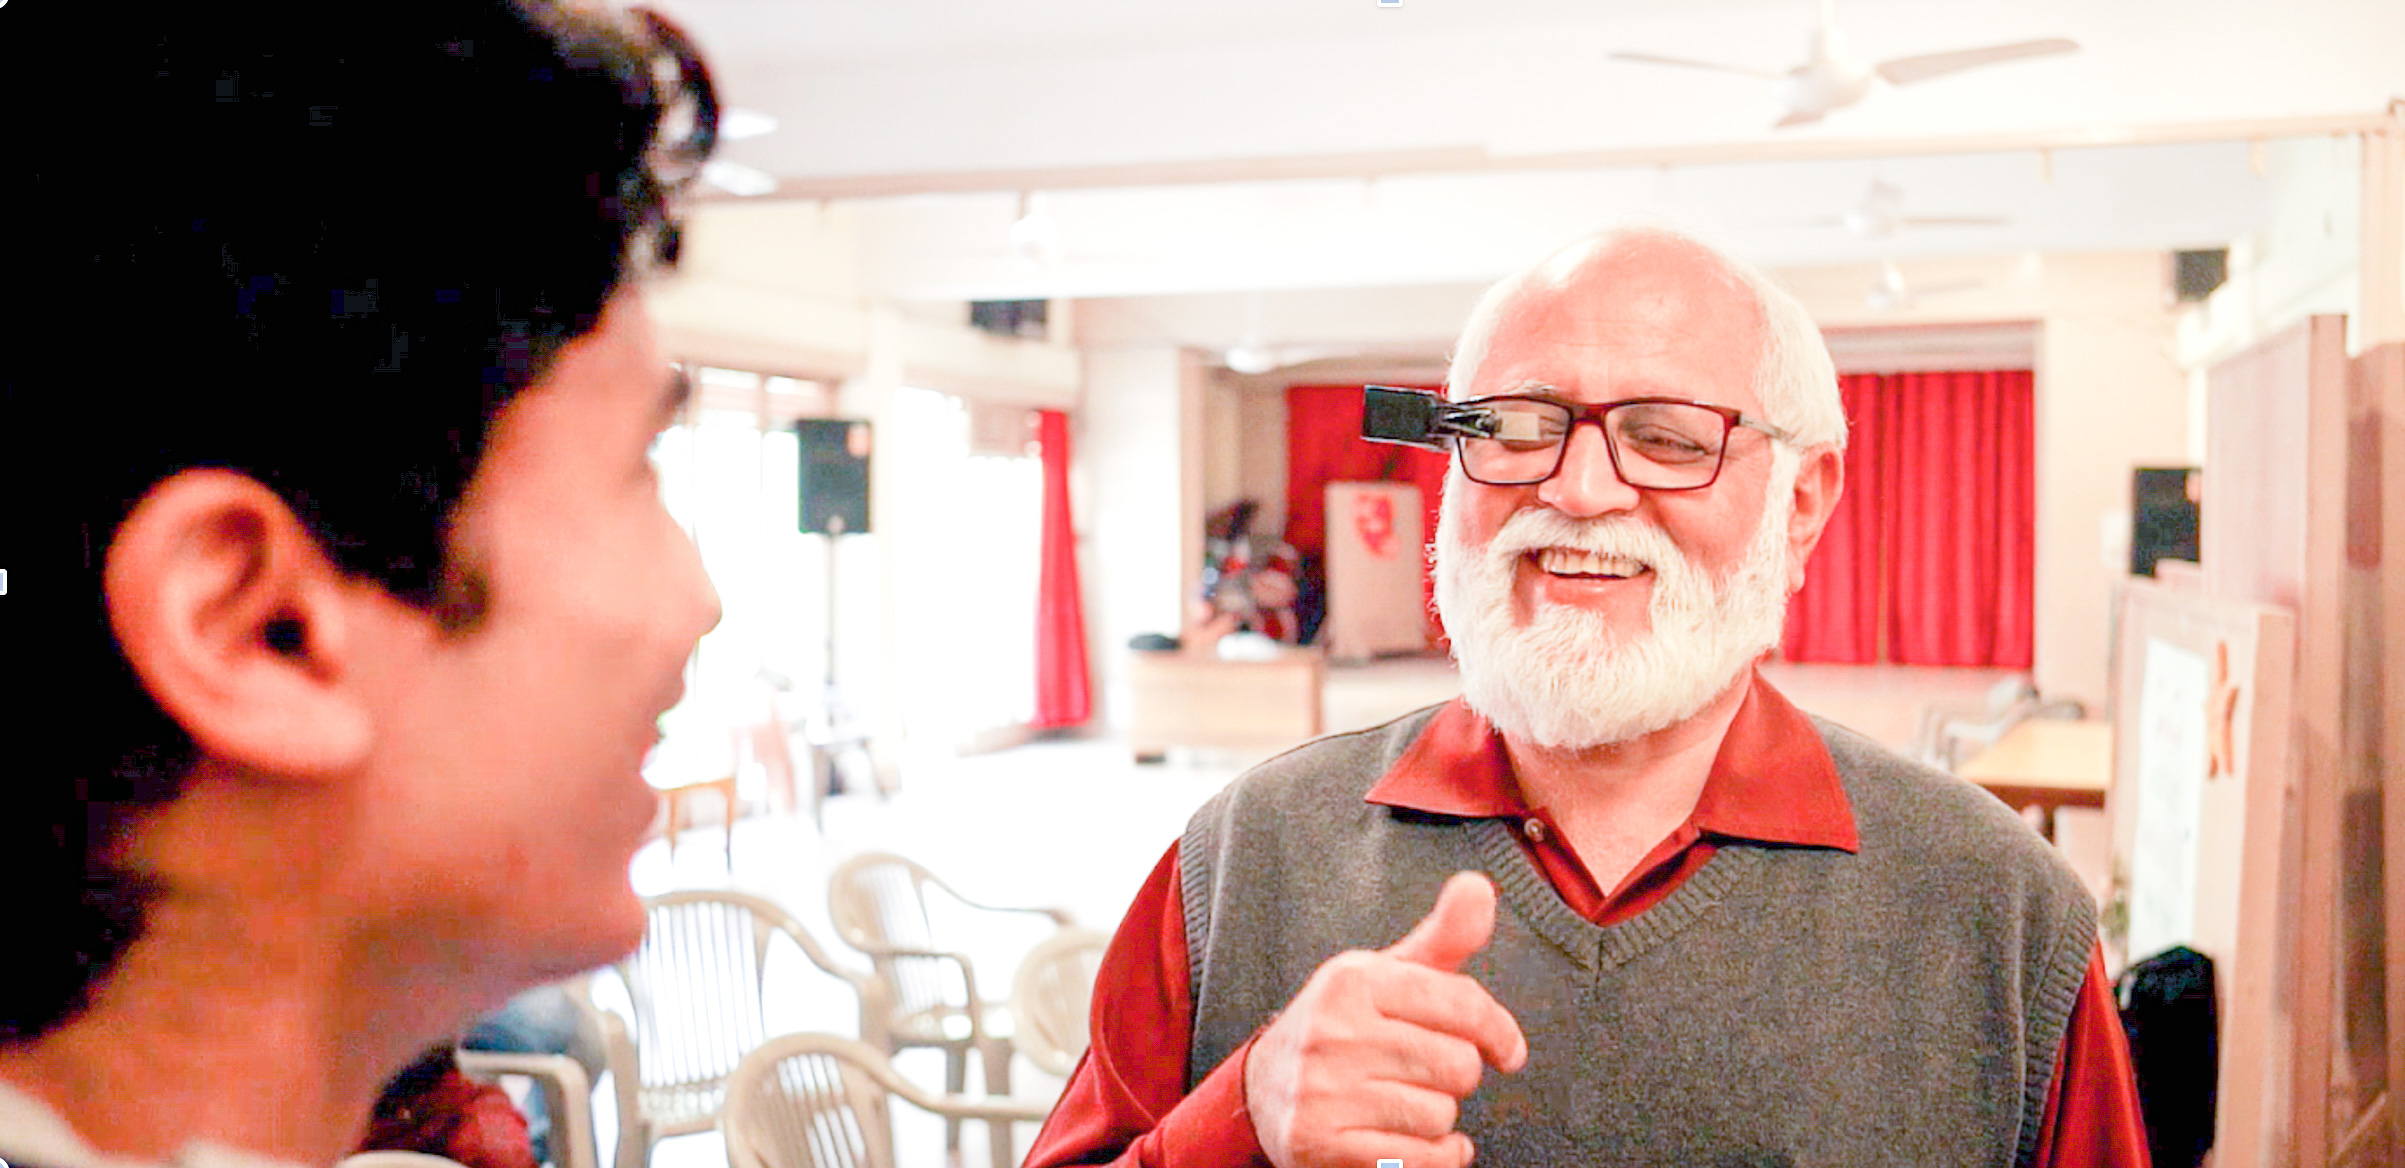 An older man seen interacting with another person and smiling. He is wearing glasses with TranscribeGlass attached to them.